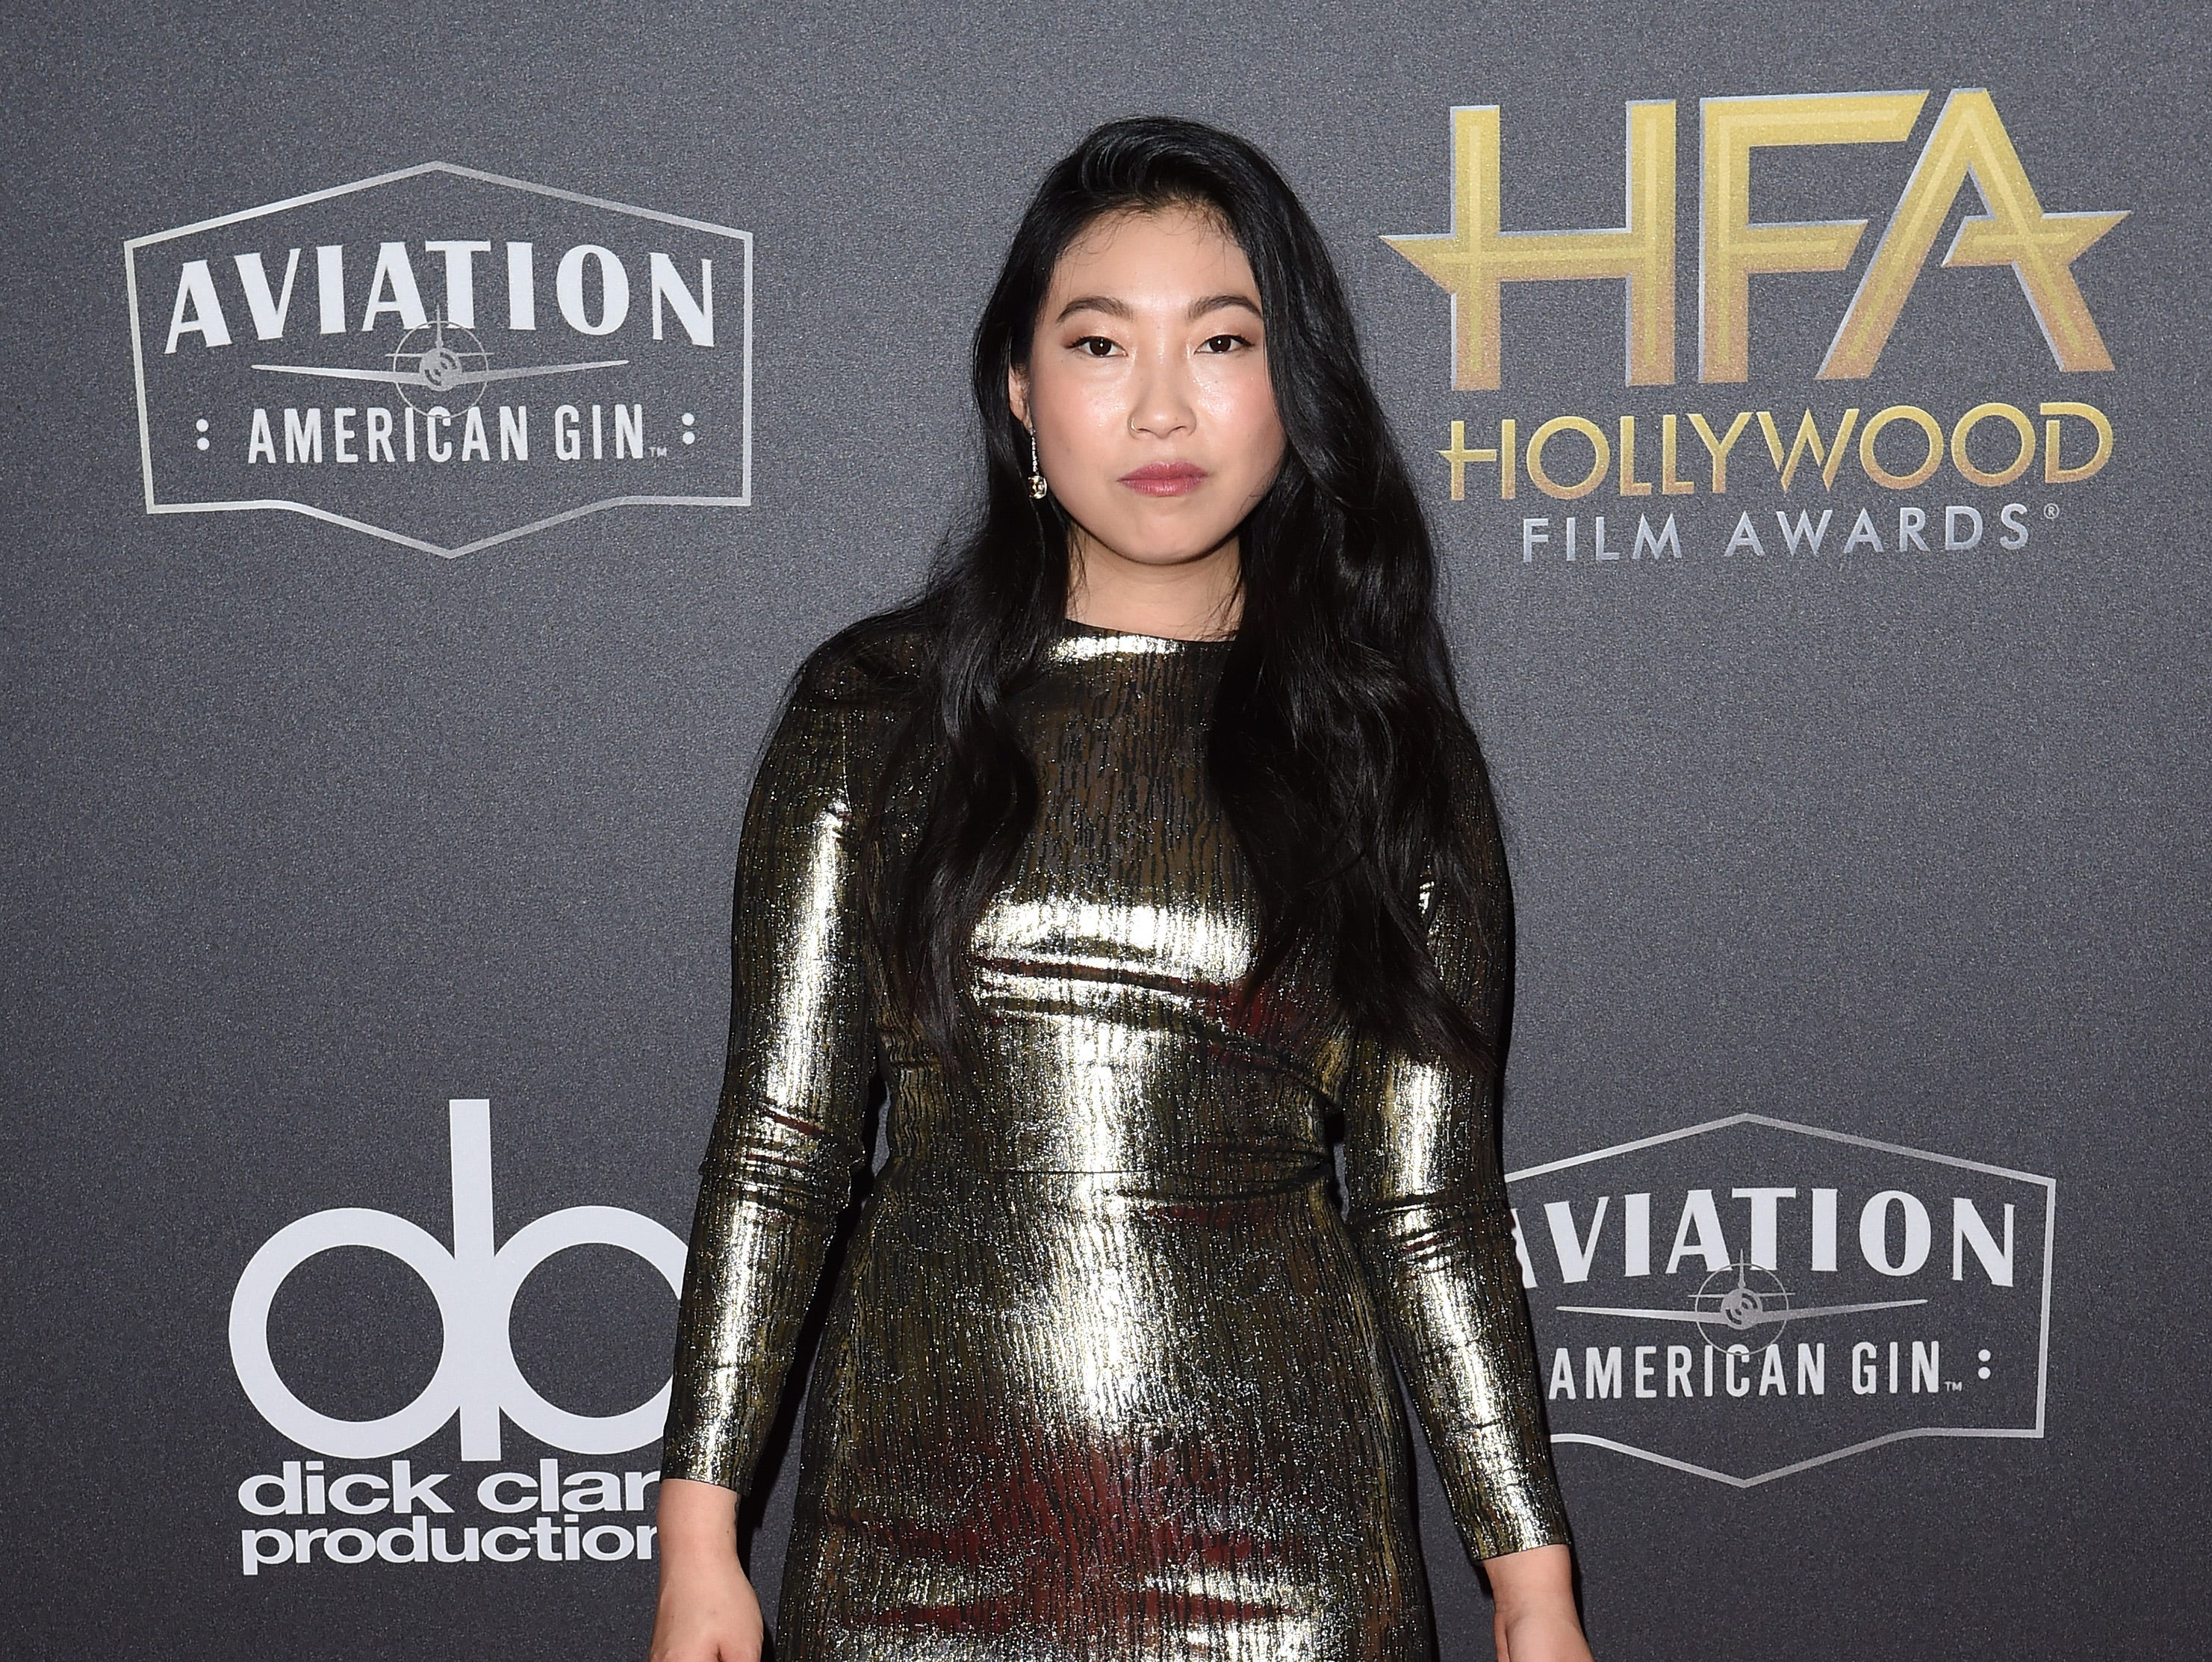 BEVERLY HILLS, CA - NOVEMBER 04:  Awkwafina attends the 22nd Annual Hollywood Film Awards at The Beverly Hilton Hotel on November 4, 2018 in Beverly Hills, California.  (Photo by Axelle/Bauer-Griffin/FilmMagic) ORG XMIT: 775237947 ORIG FILE ID: 1057575026